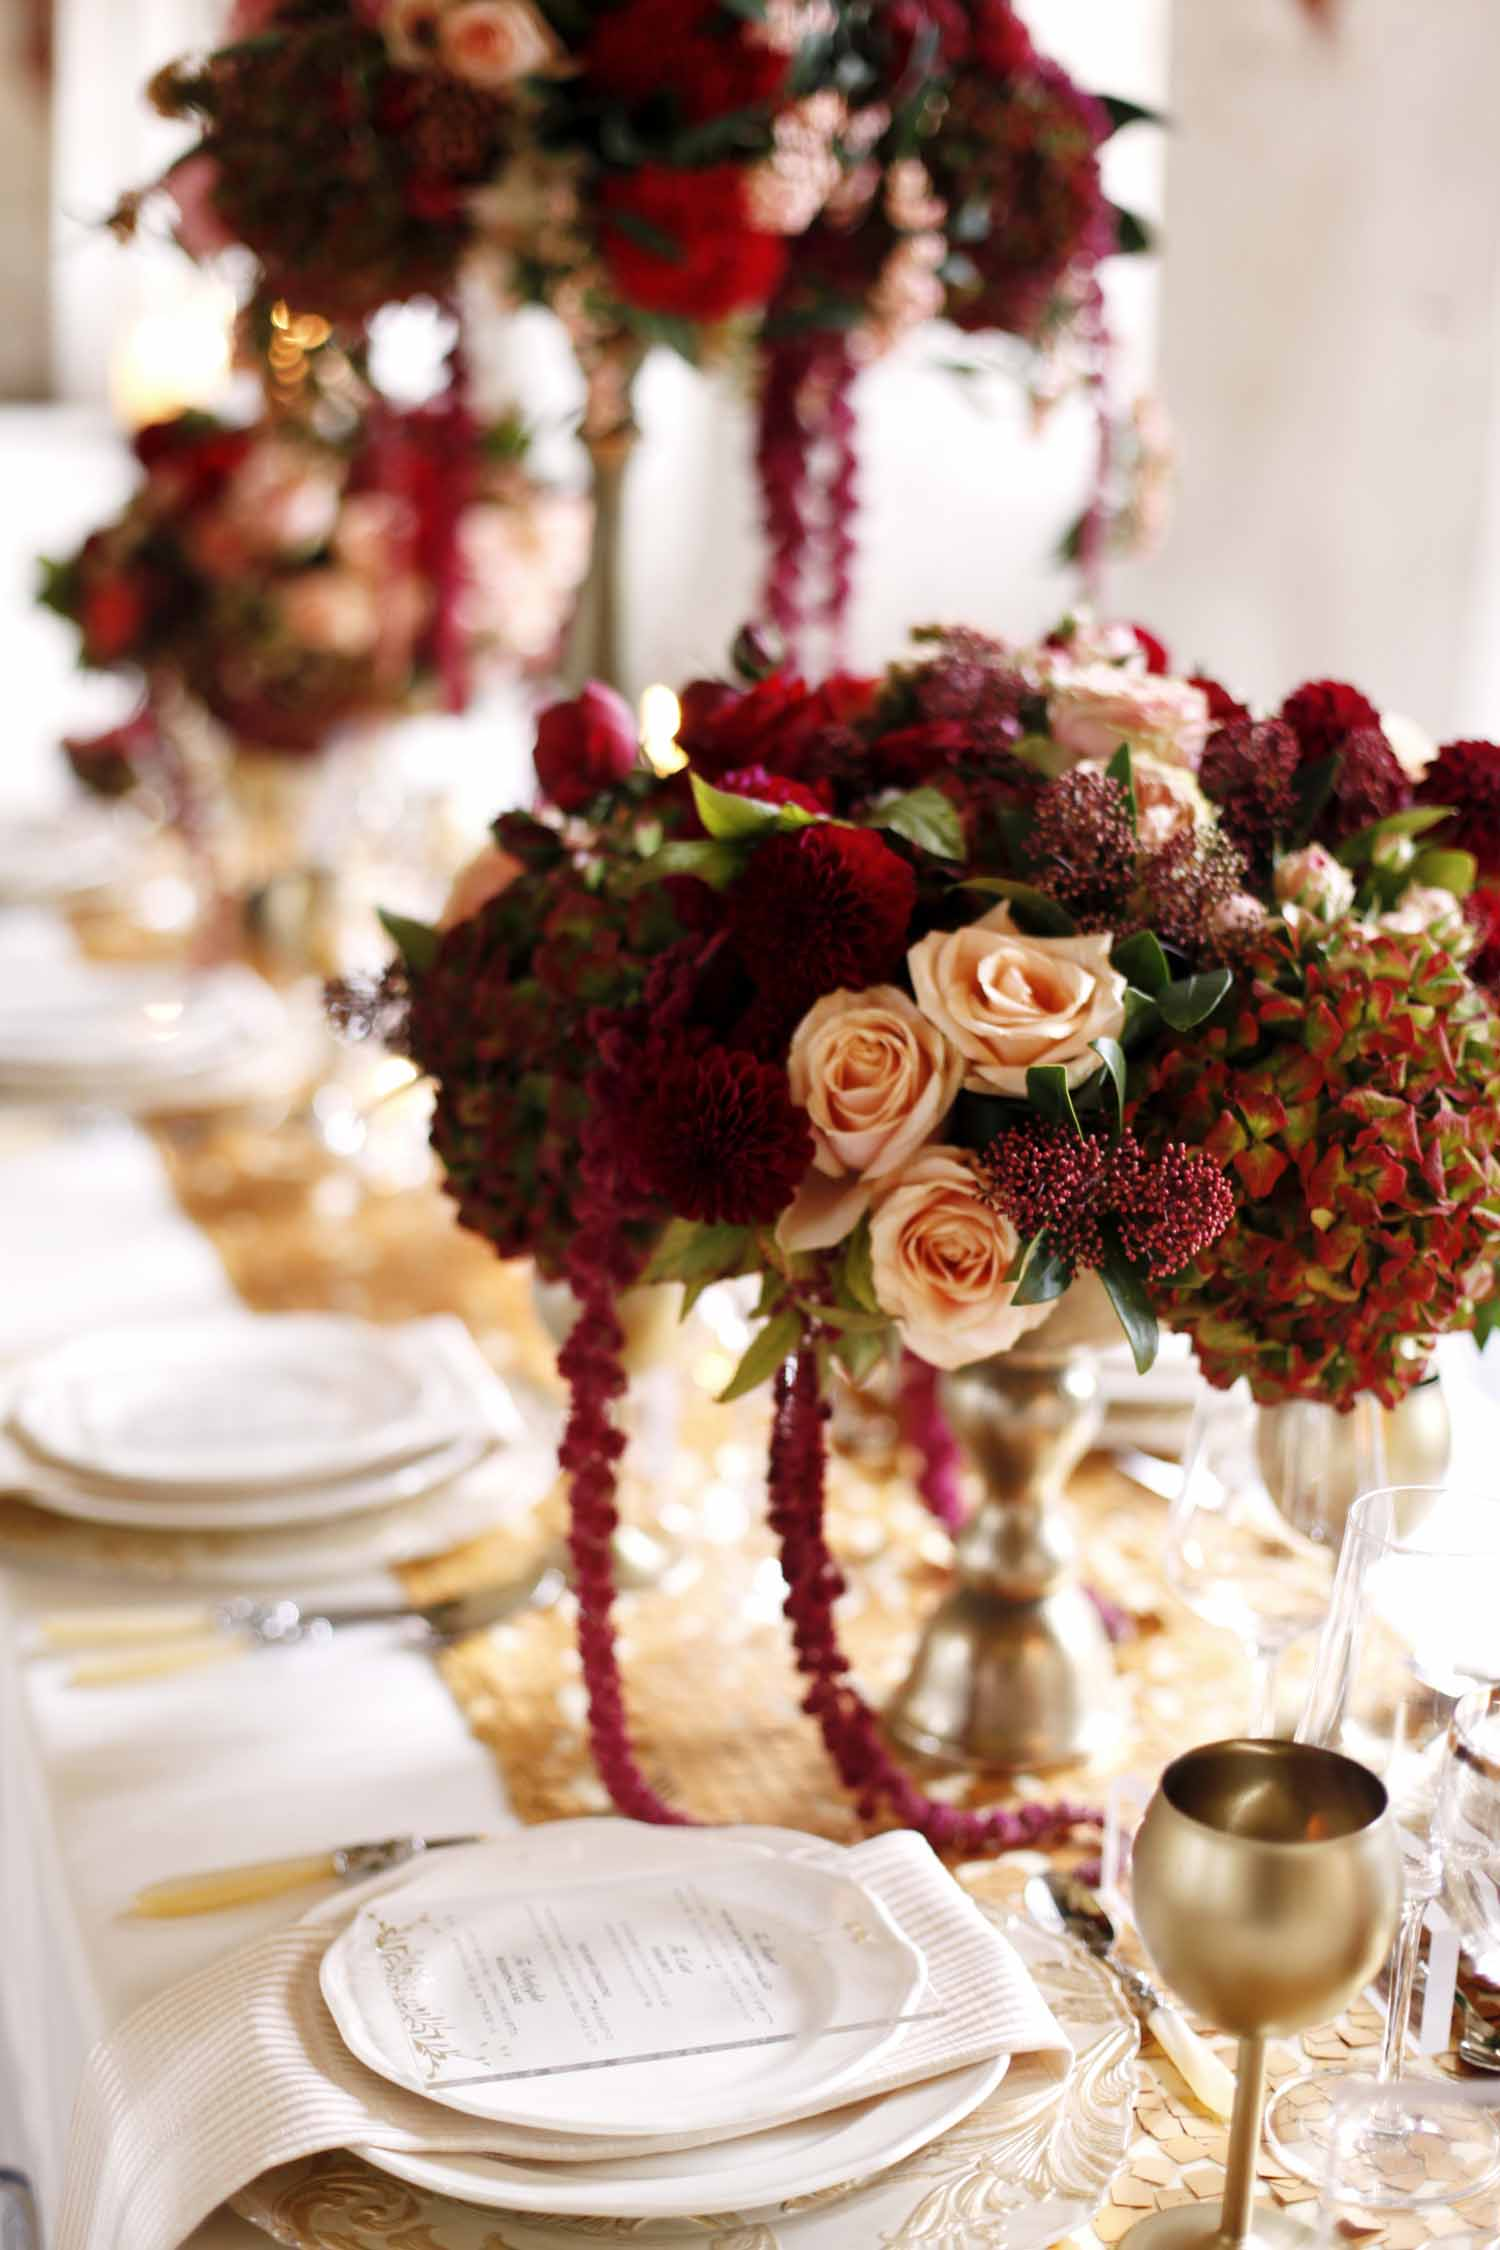 Burgundy and blush centerpiece in gold compote for Wedding Style Shoot in Kloster Eberbach, Germany, designed by Flora Nova Design, Seattle